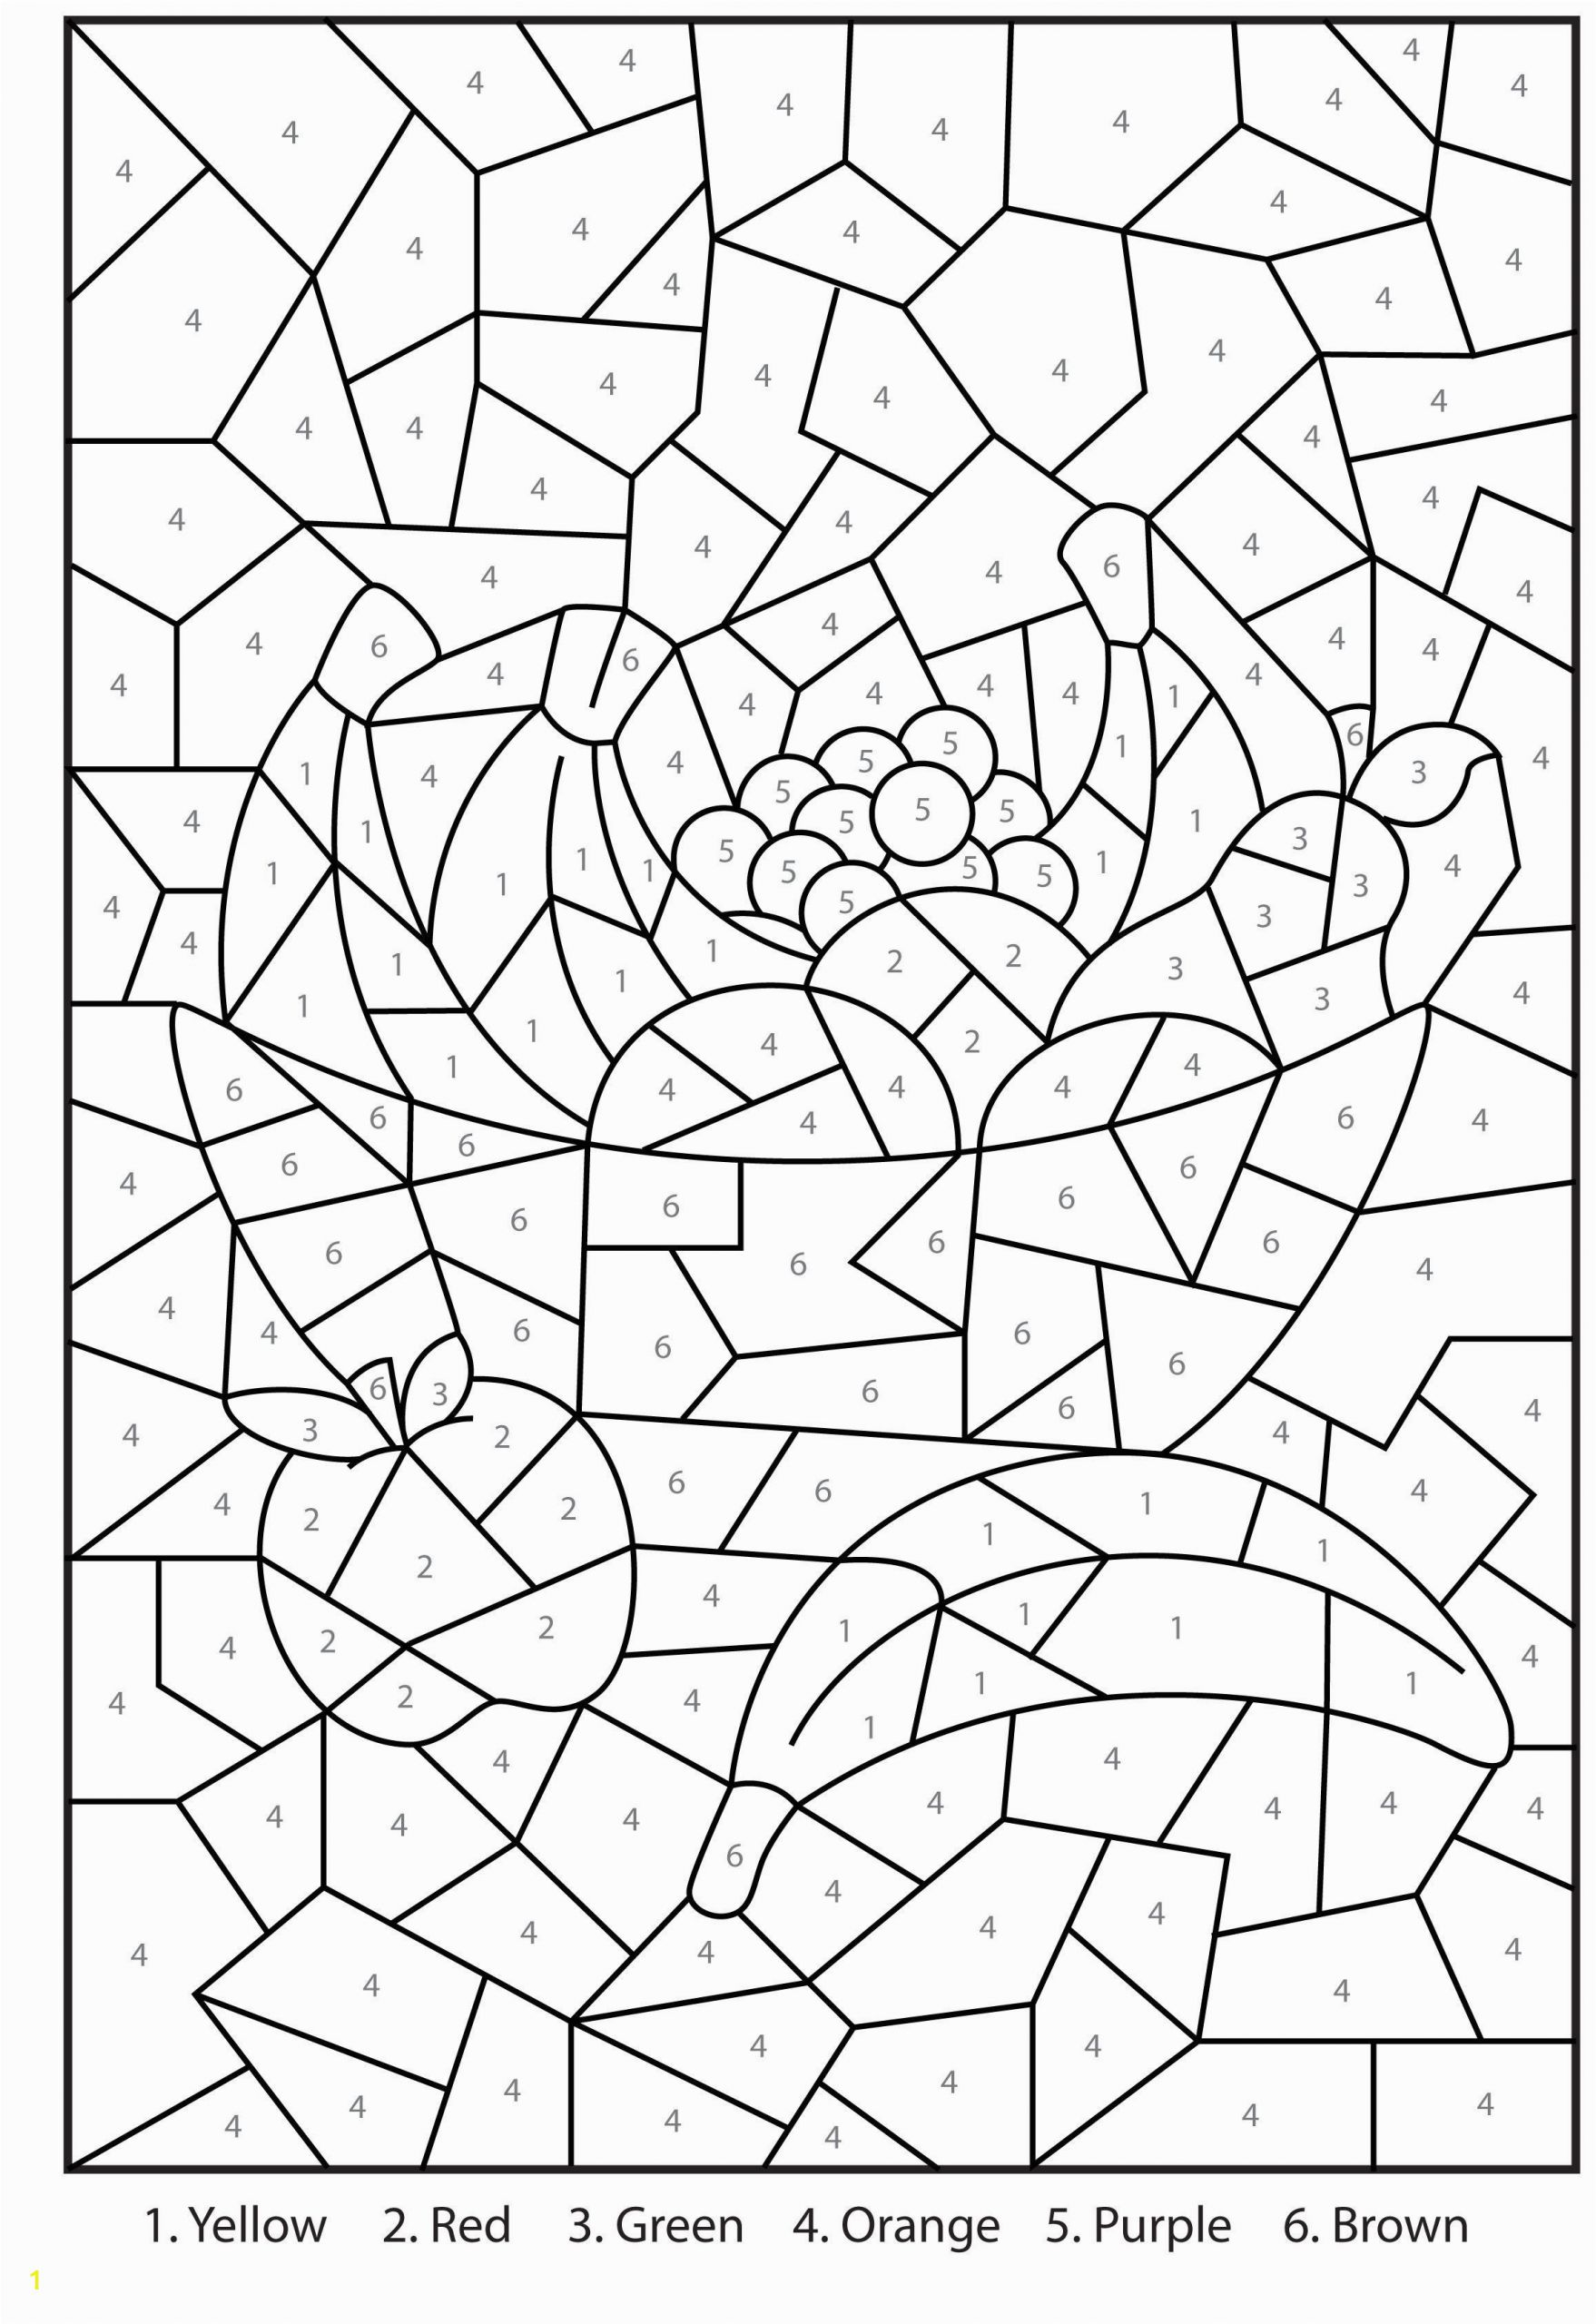 Color by Number Christian Coloring Sheets Image Result for Bible Math Worksheets